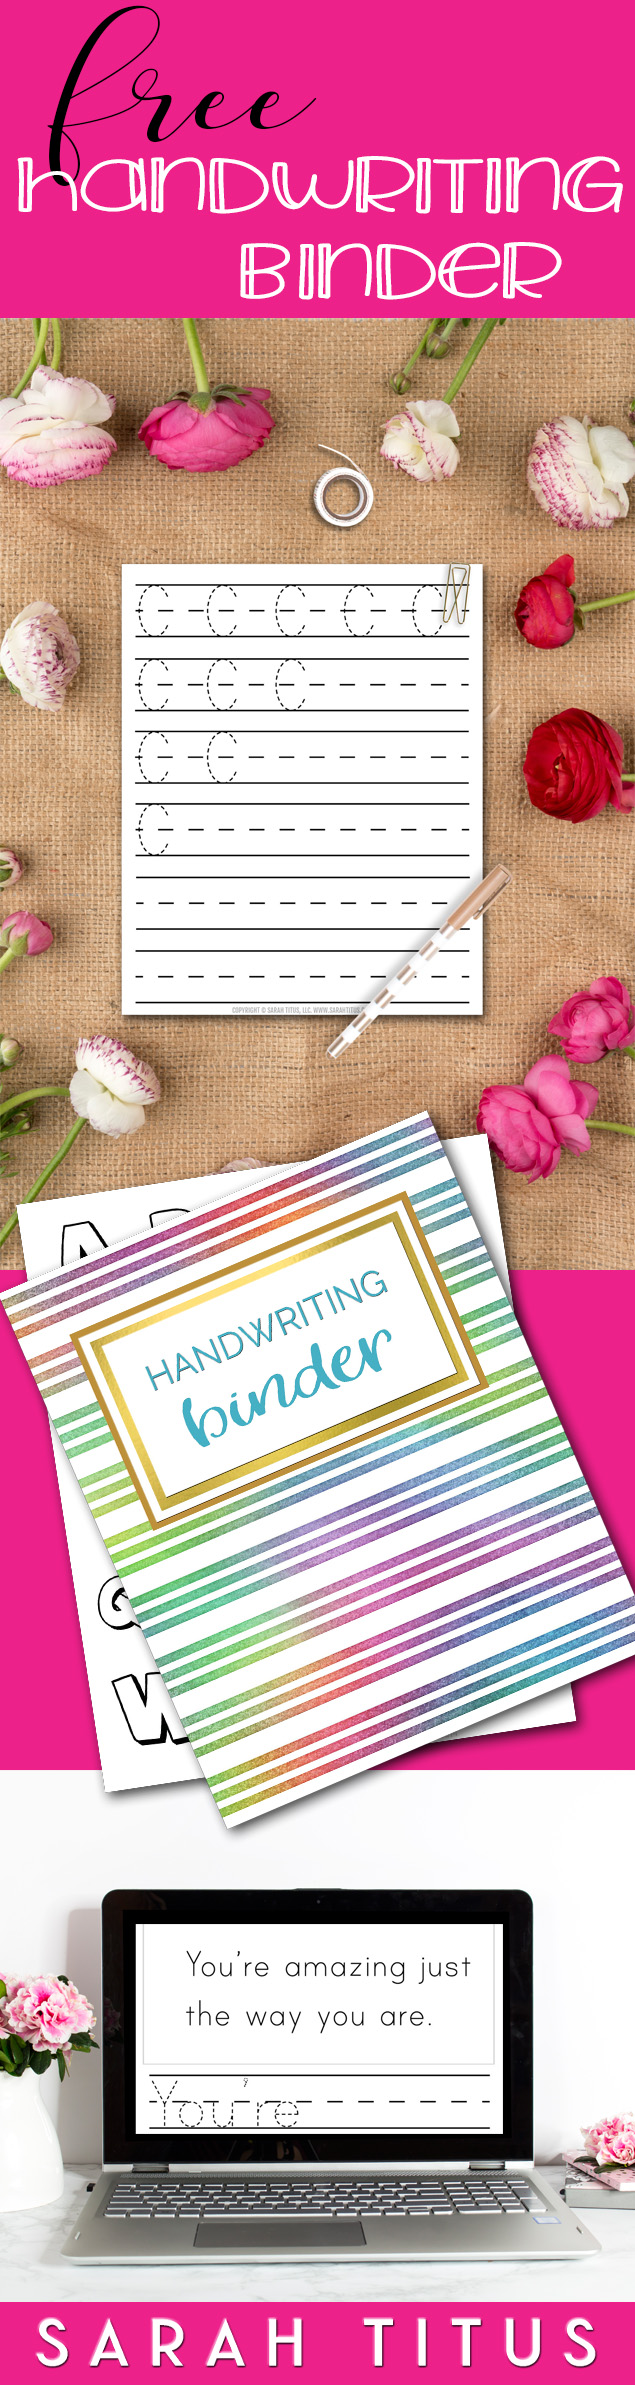 60+ page Handwriting Binder printables set includes, capital letters, tracing sheets, coloring pages, encouraging copy sentences...and more! #handwritingpracticesheets #freeprintables #freebinder #freehandwriting #handwriting